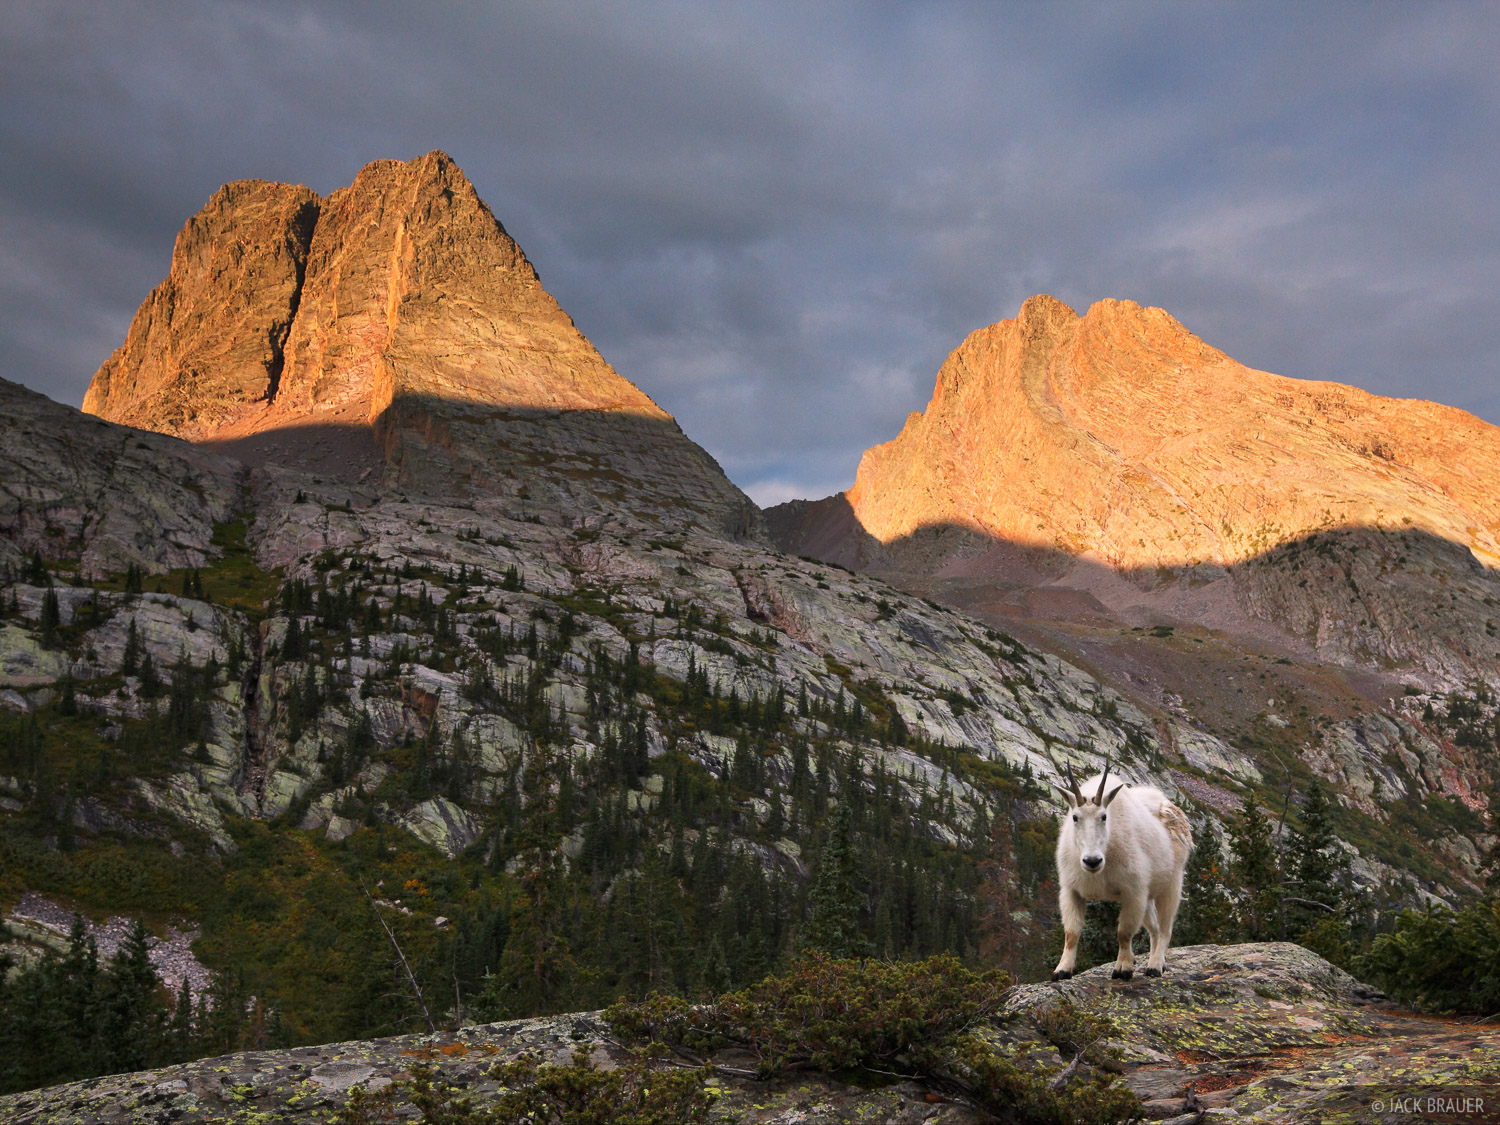 Mountain goat, Vestal Peak, Arrow Peak, Grenadier Range, San Juan Mountains, Weminuche Wilderness, Colorado, photo